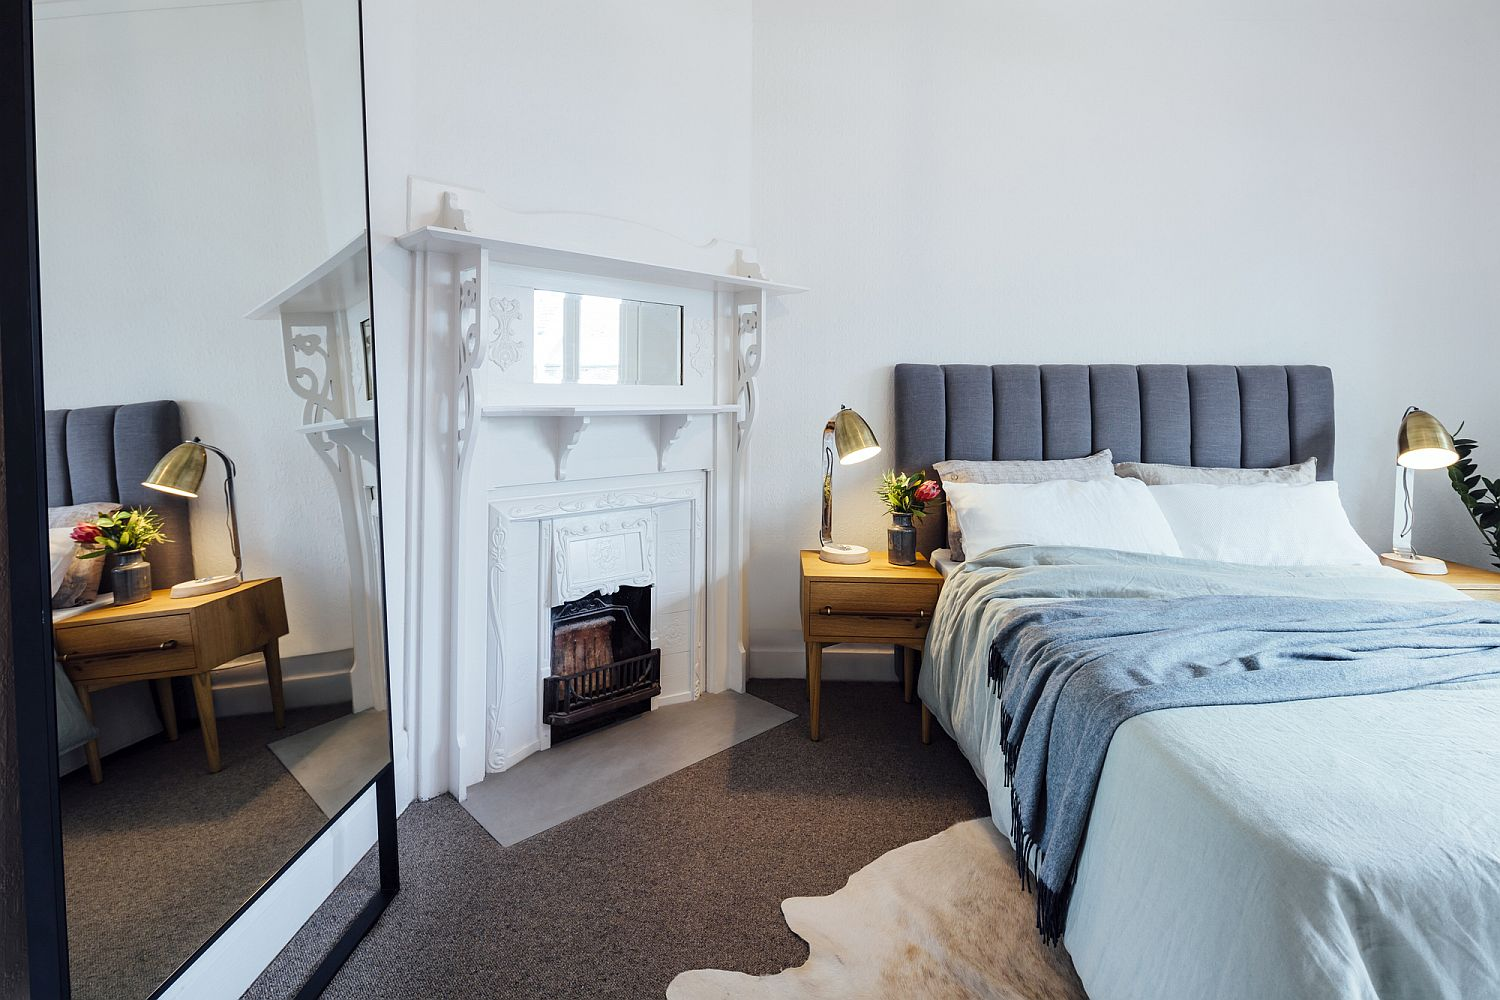 Large mirror in the bedroom gives the room a more spacious appeal